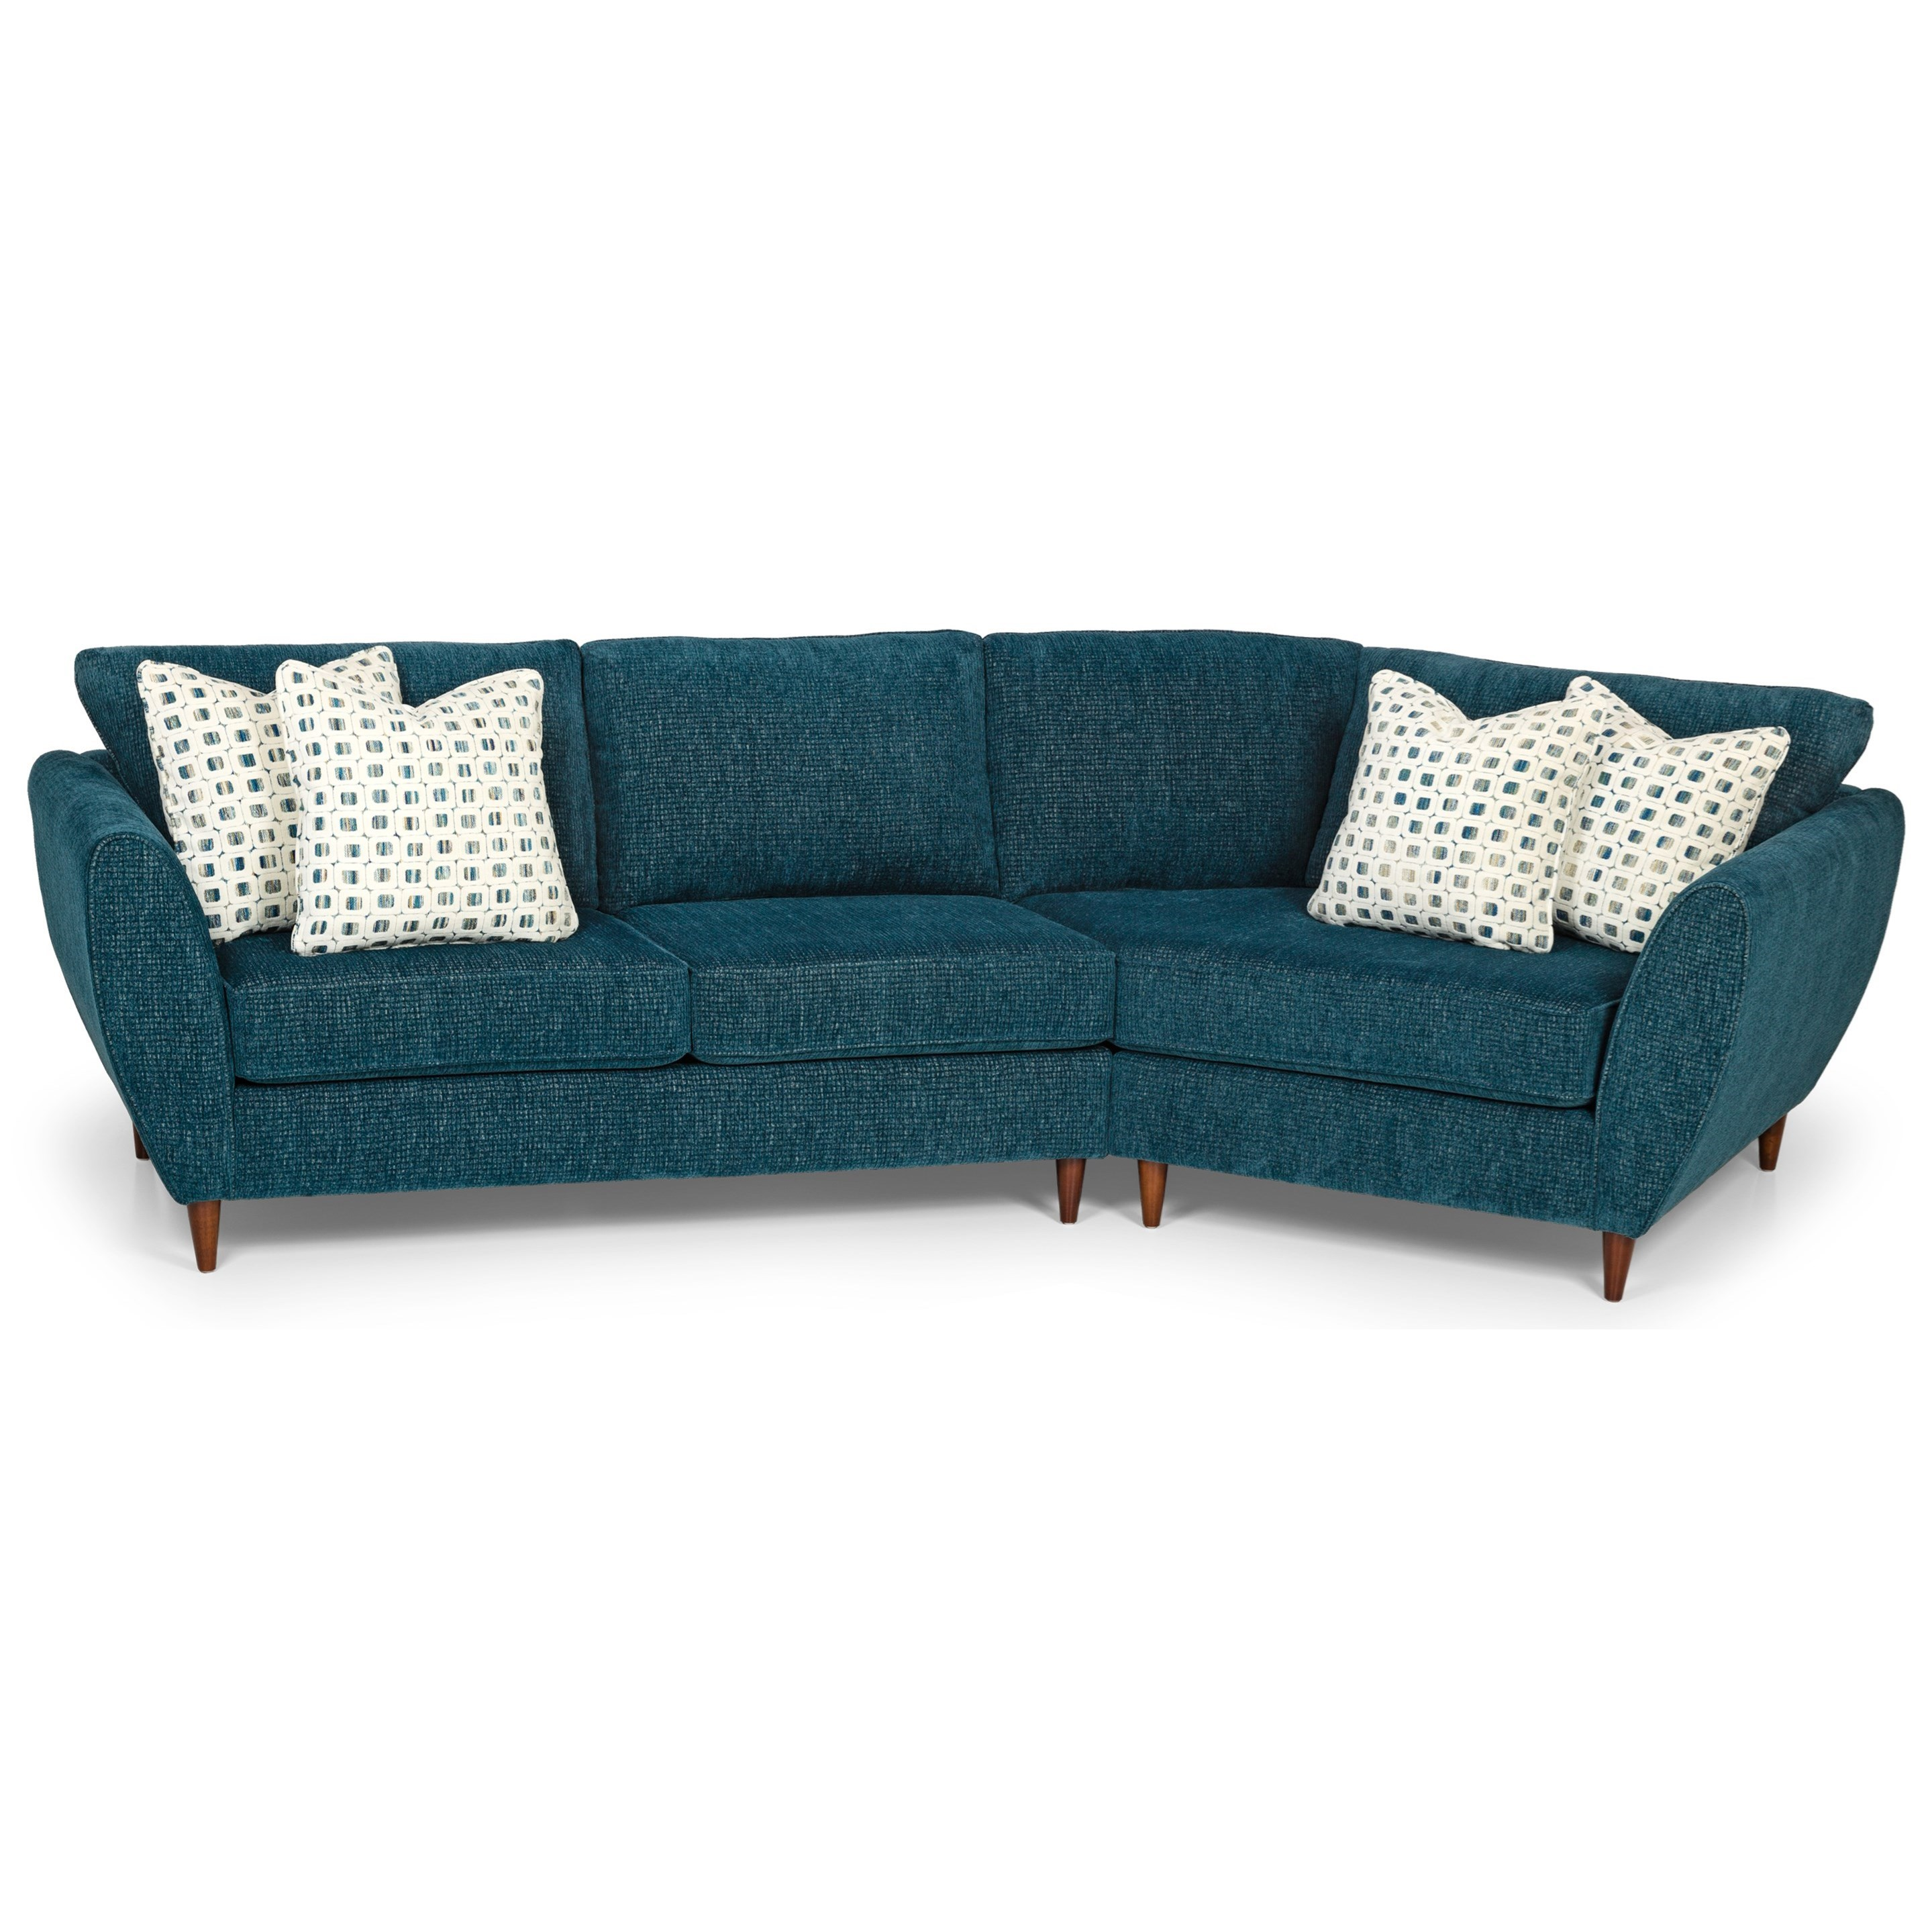 473 2-Piece Sectional Sofa w/ RAF Cuddler by Stanton at Wilson's Furniture